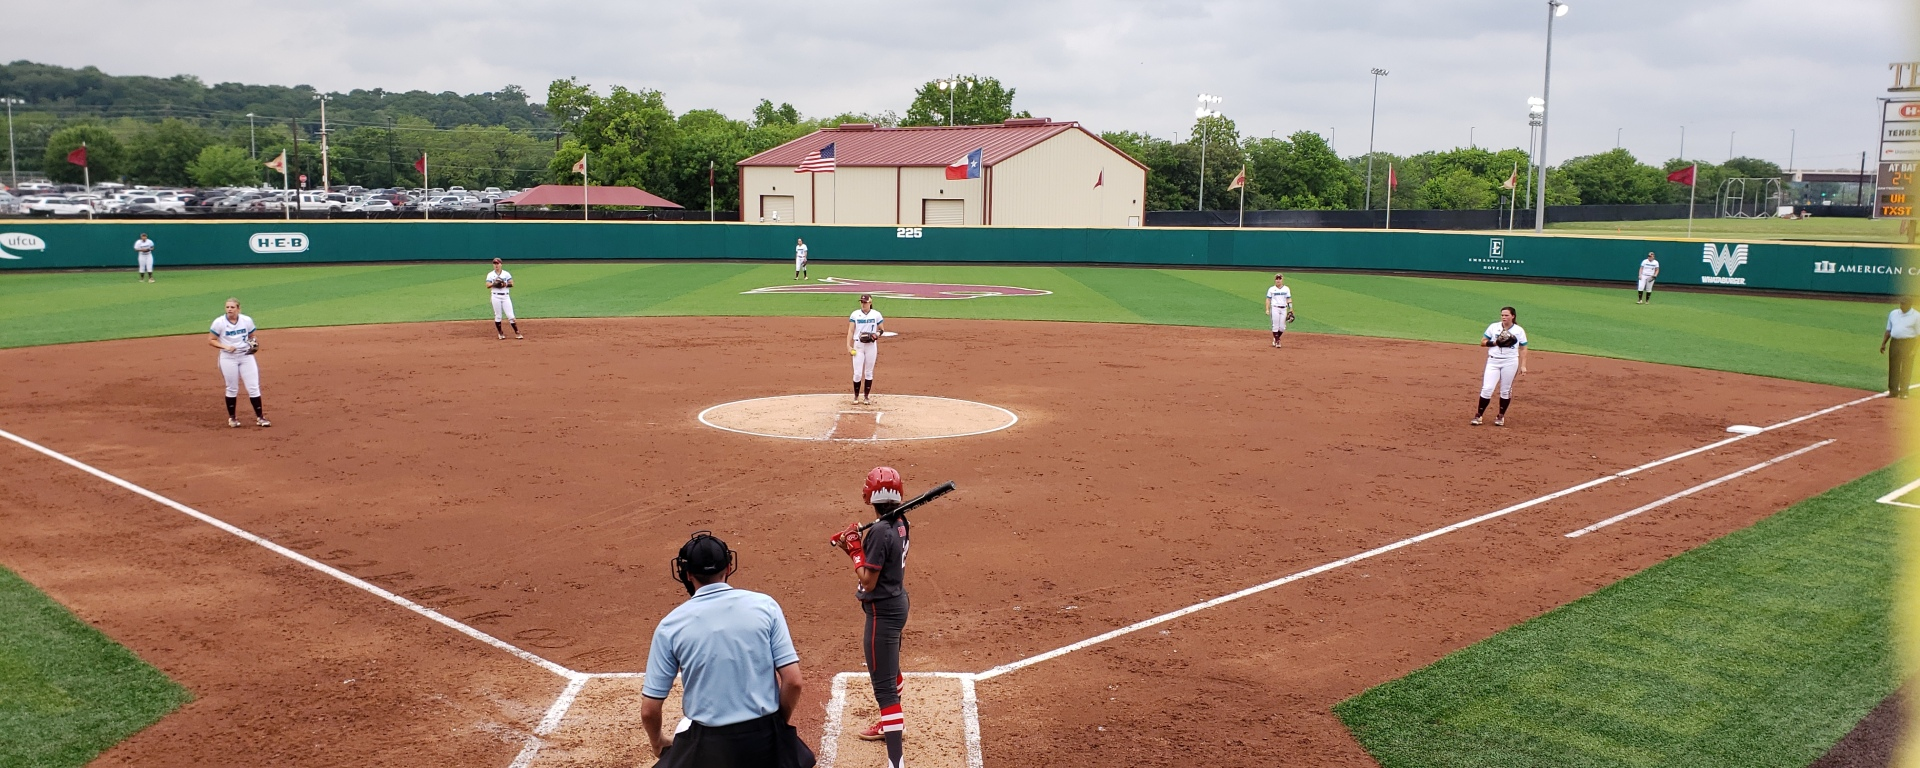 The Texas State softball team in defensive formation in-game